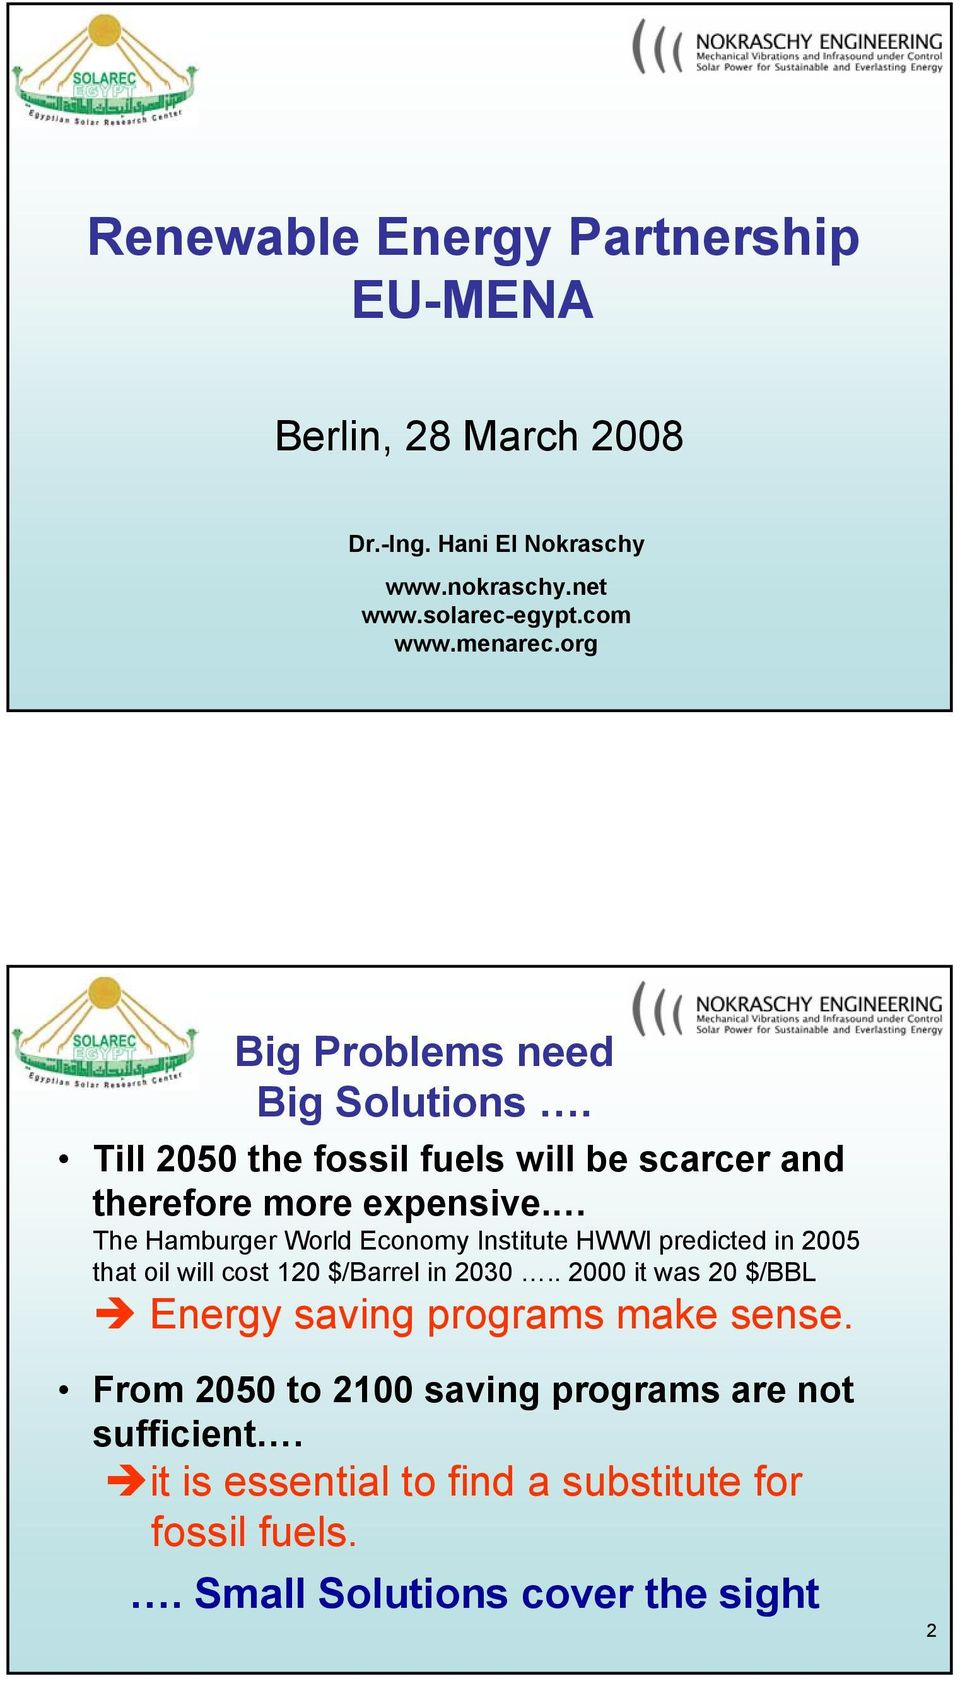 The Hamburger World Economy Institute HWWI predicted in 2005 that oil will cost 120 $/Barrel in 2030.